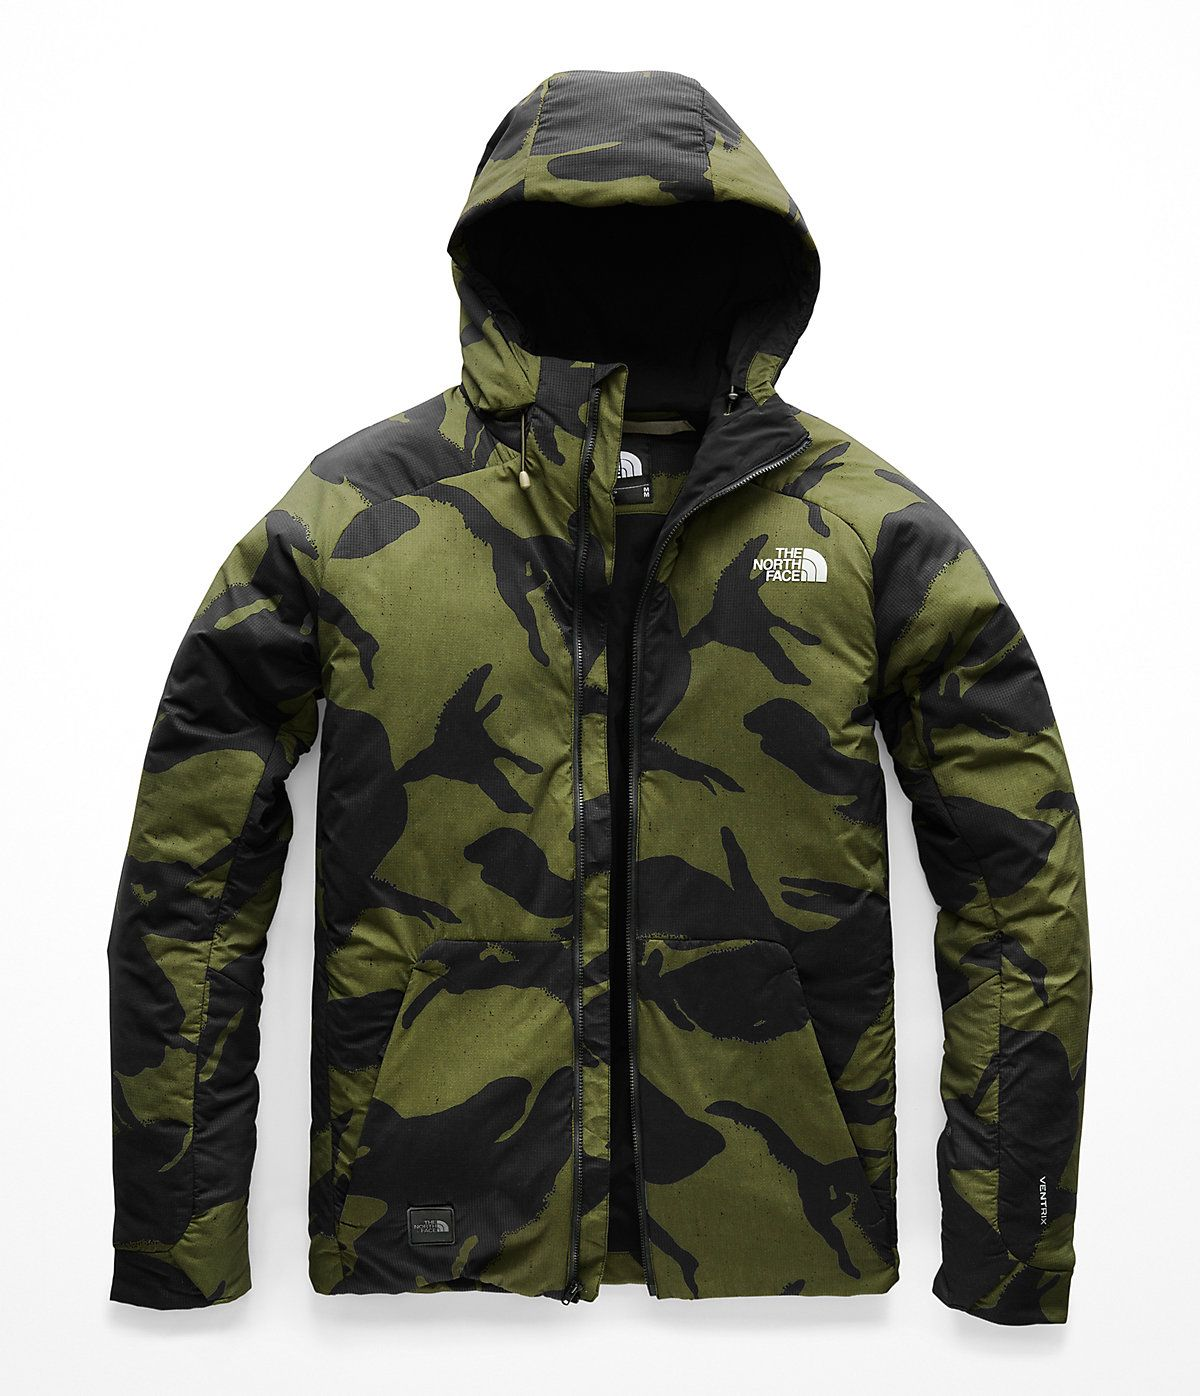 Men's Lodgefather Ventrix™ Jacket in 2020 | Jackets, The